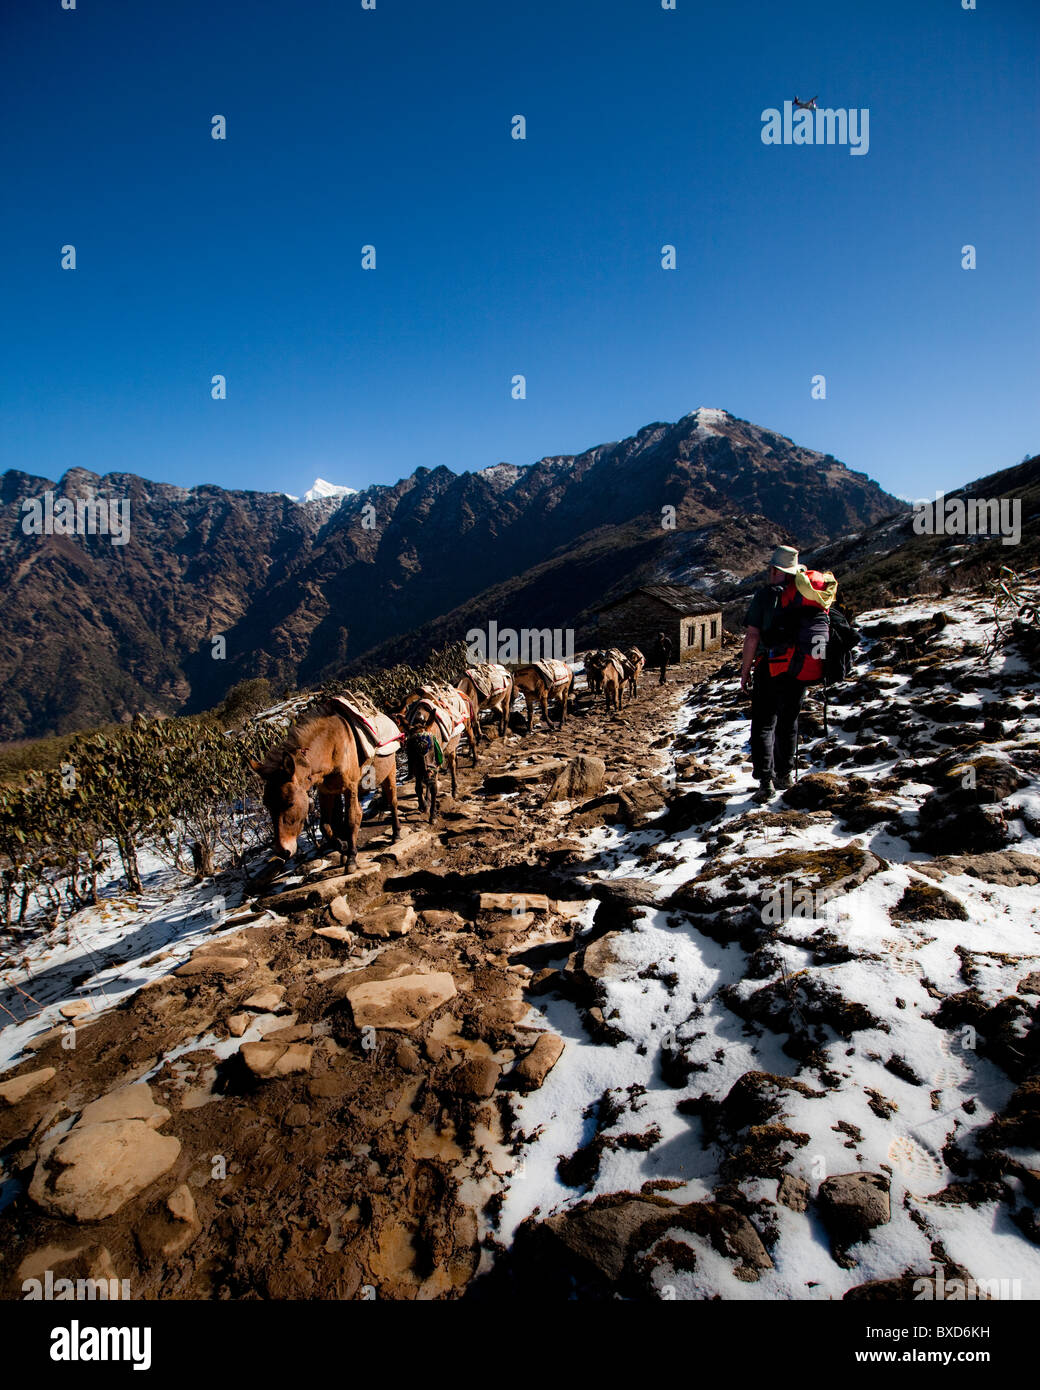 A trekker steps off the side of the trail to allow a mule train to pass. - Stock Image